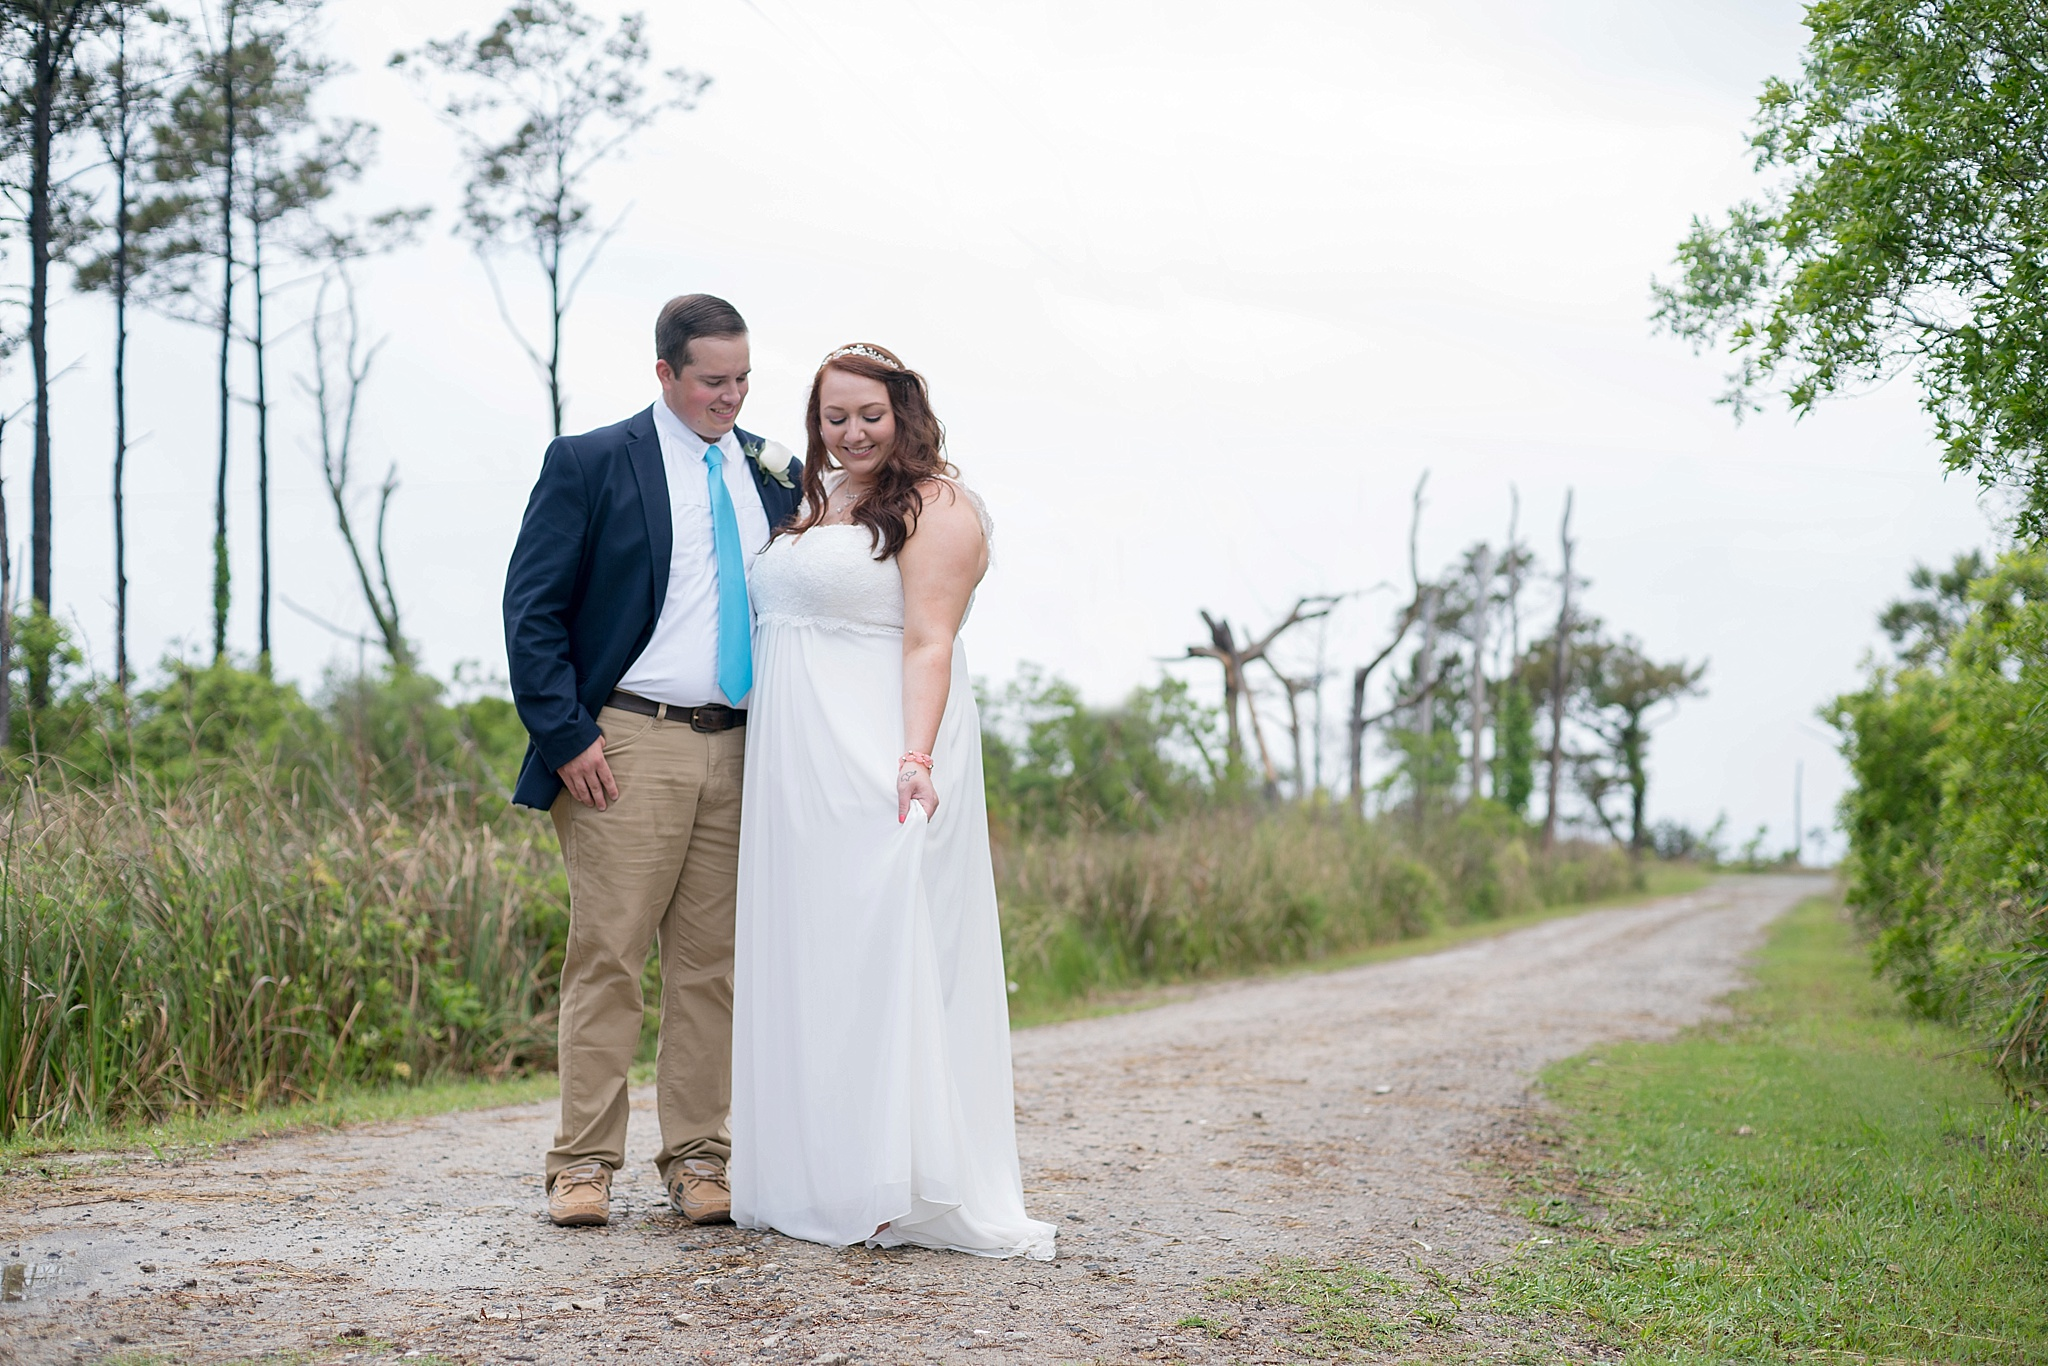 Manteo-NC-Wedding-Photographer-147.jpg